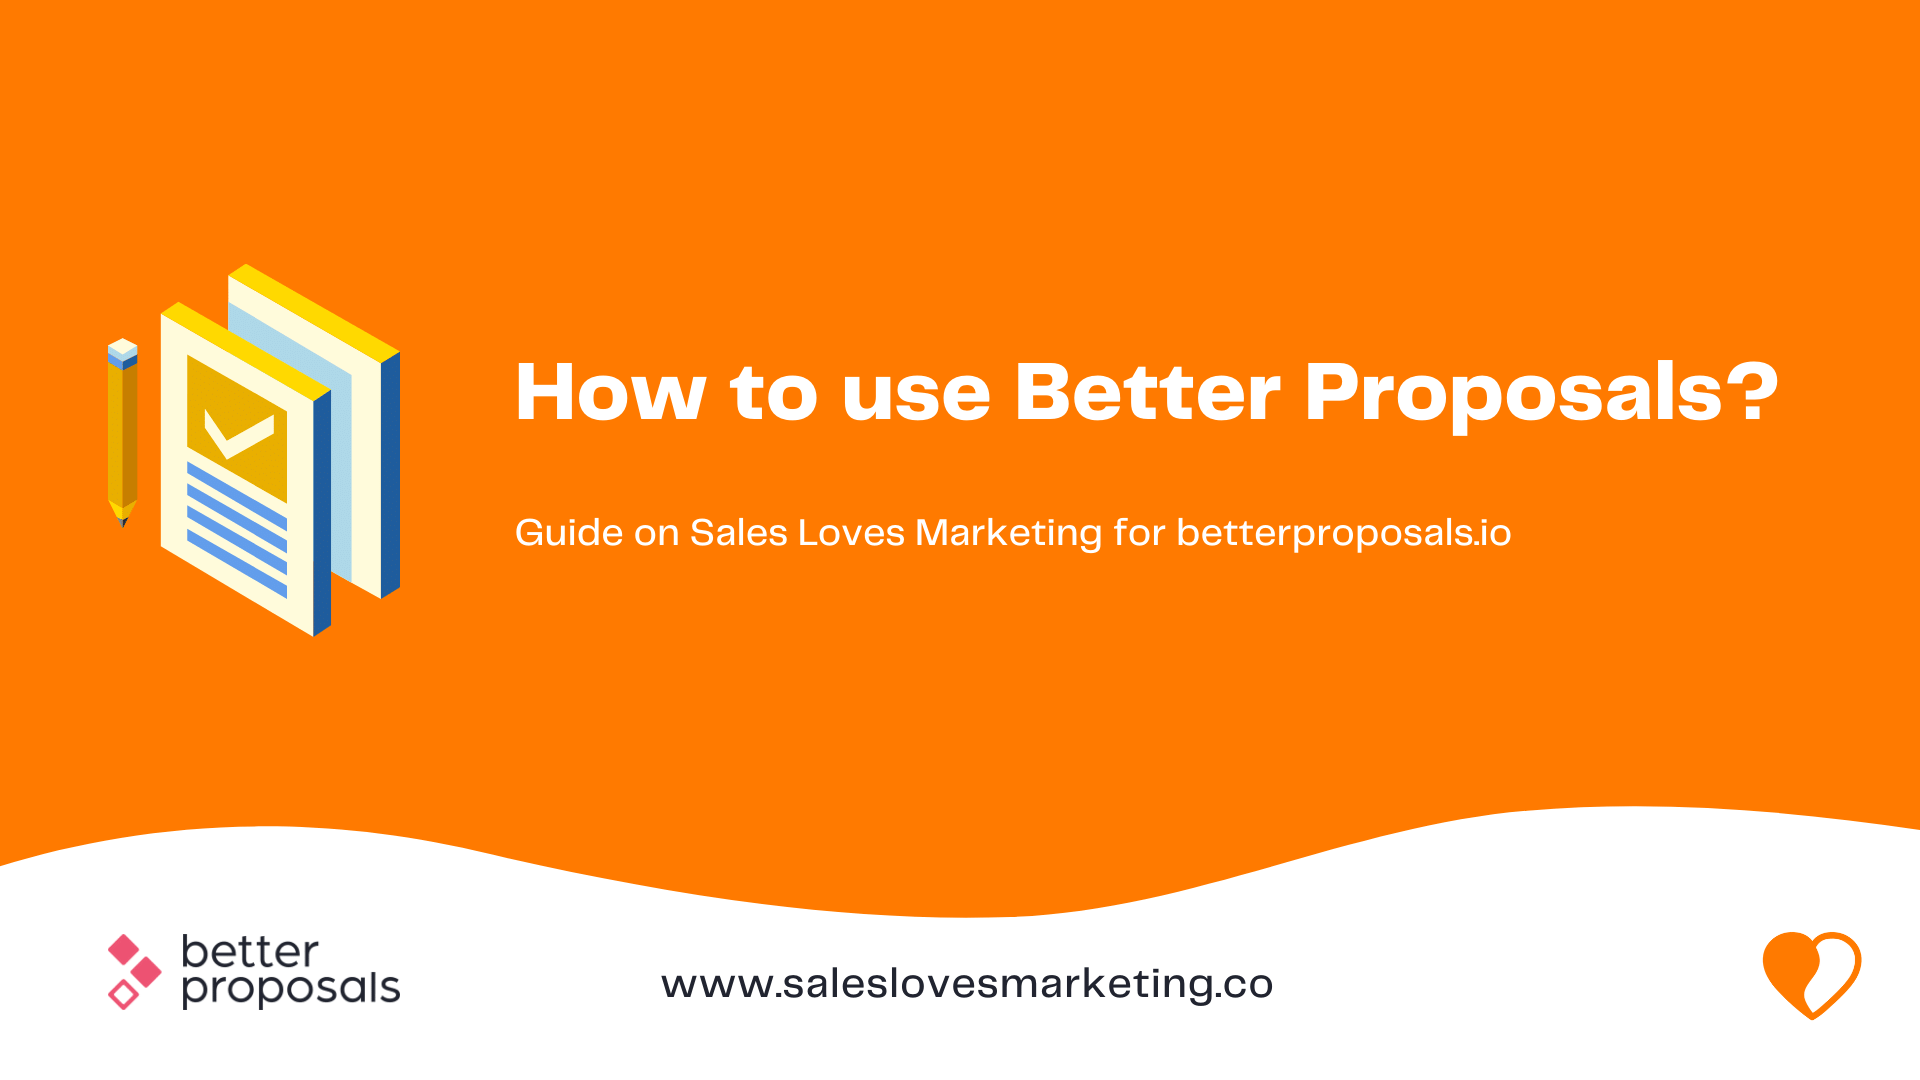 How to use Better Proposals